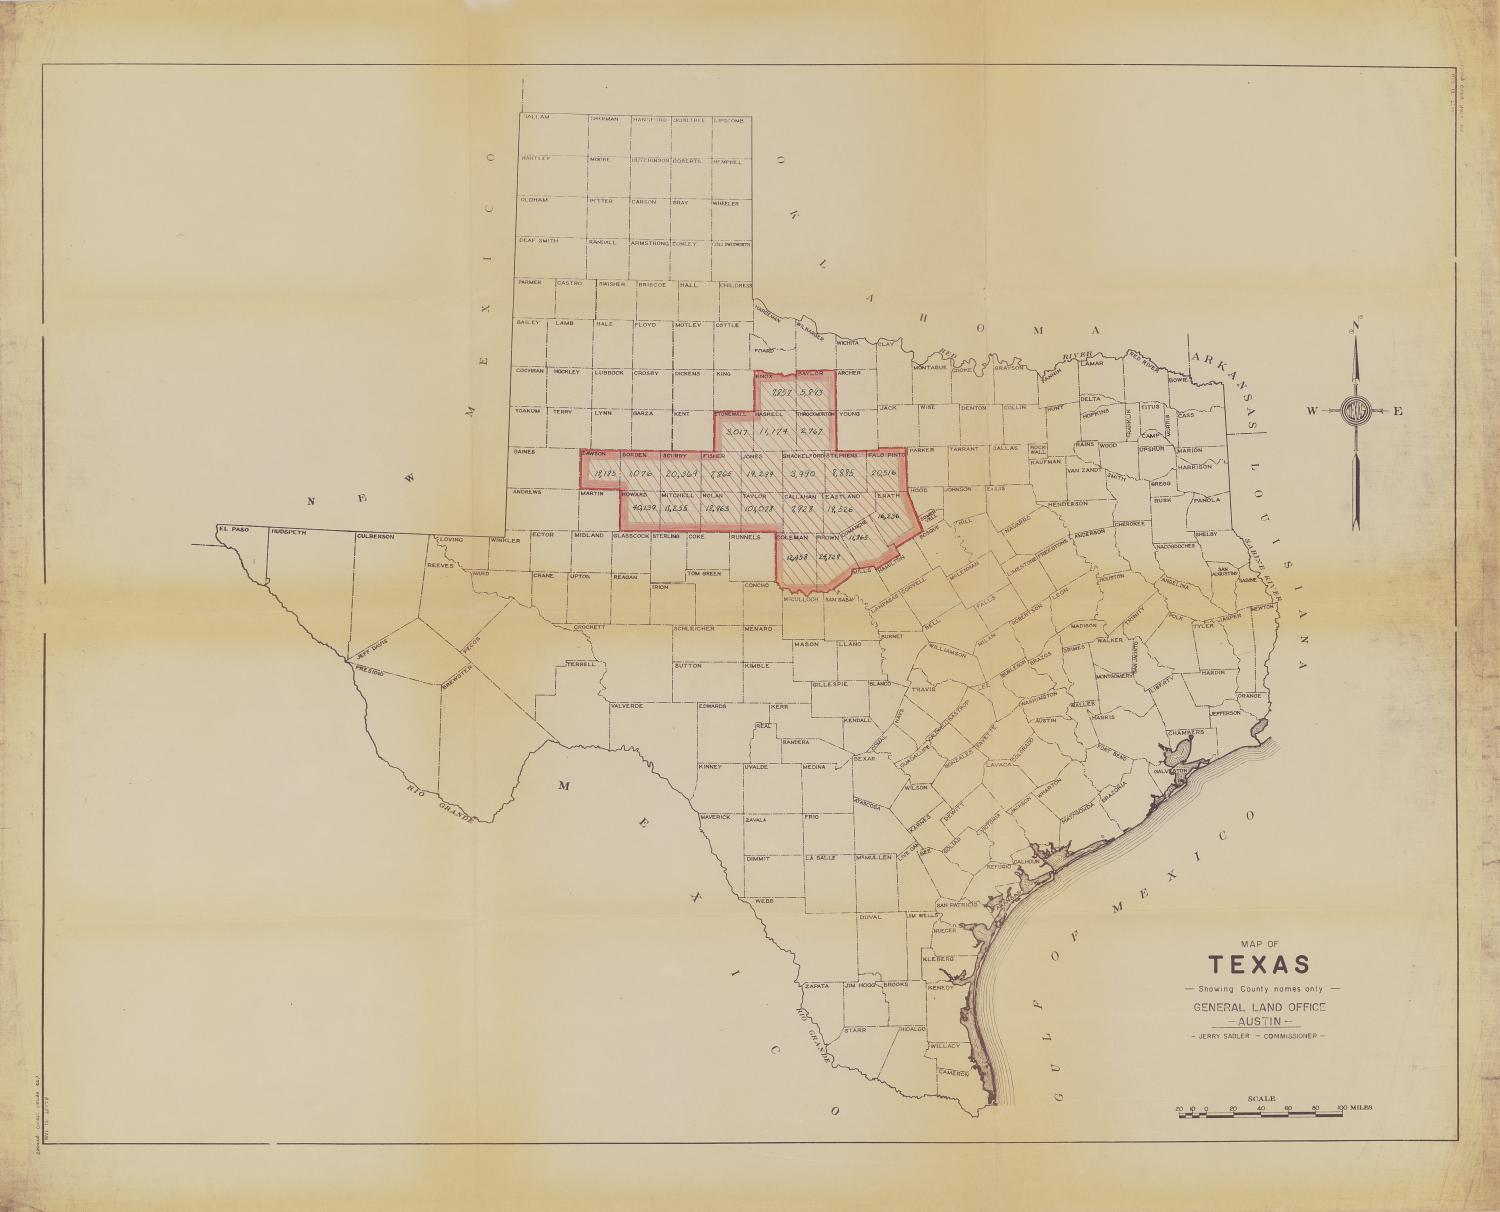 Map Of Texas Showing Austin.Map Of Texas Showing County Names Only The Portal To Texas History